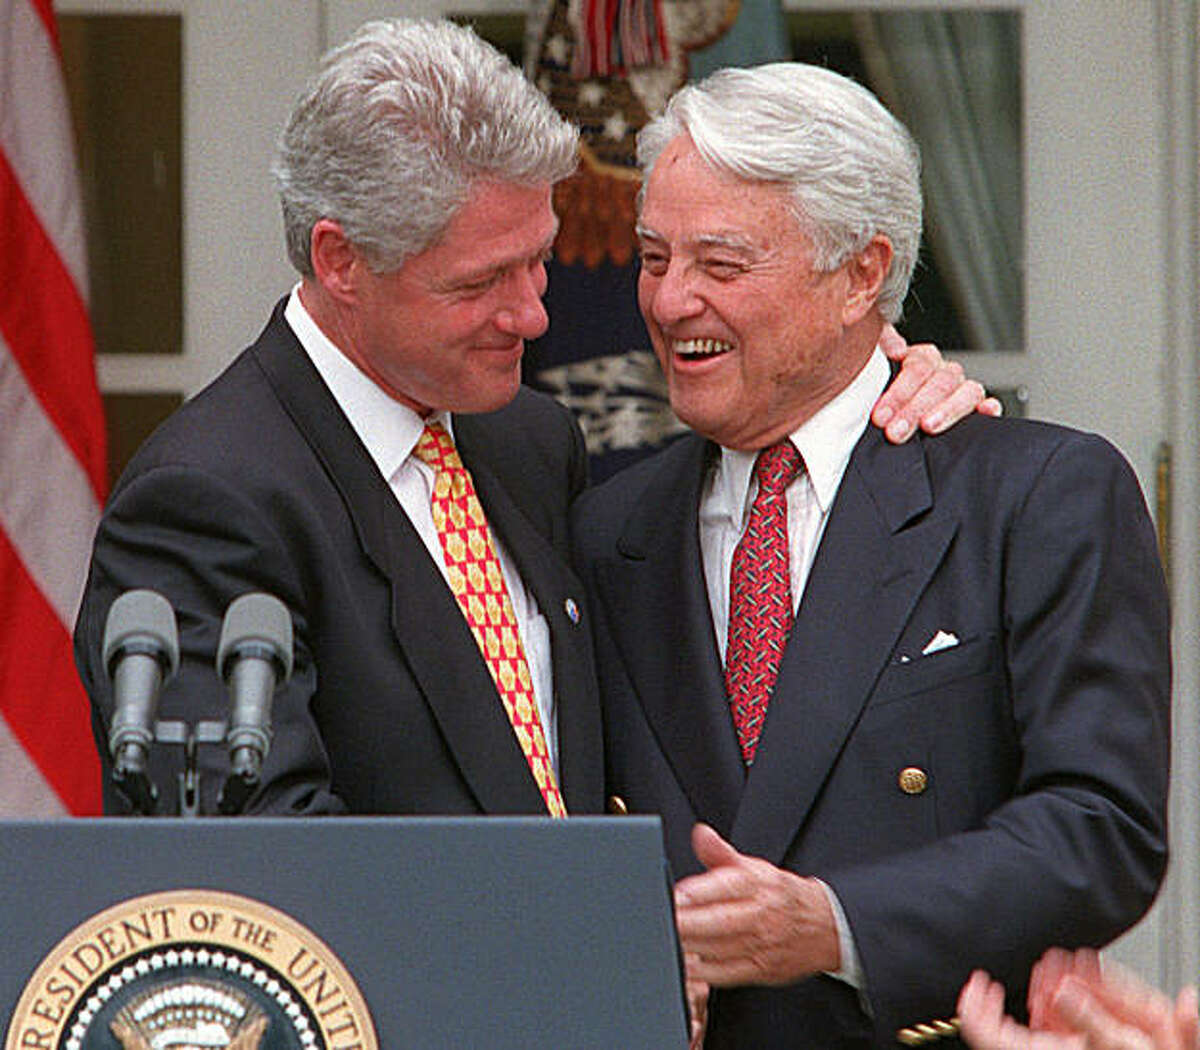 FILE - In this June 19, 1996 file photo, President Clinton embraces R. Sargent Shriver in the Rose Garden of the White House Wednesday June 19, 1996 during a ceremony to honor the 35th anniversary of the Peace Corps. Shriver was named the first director of the Peace Corps by President John F. Kennedy. Shriver, the exuberant public servant and Kennedy in-law whose singular career included directing the Peace Corps, fighting the